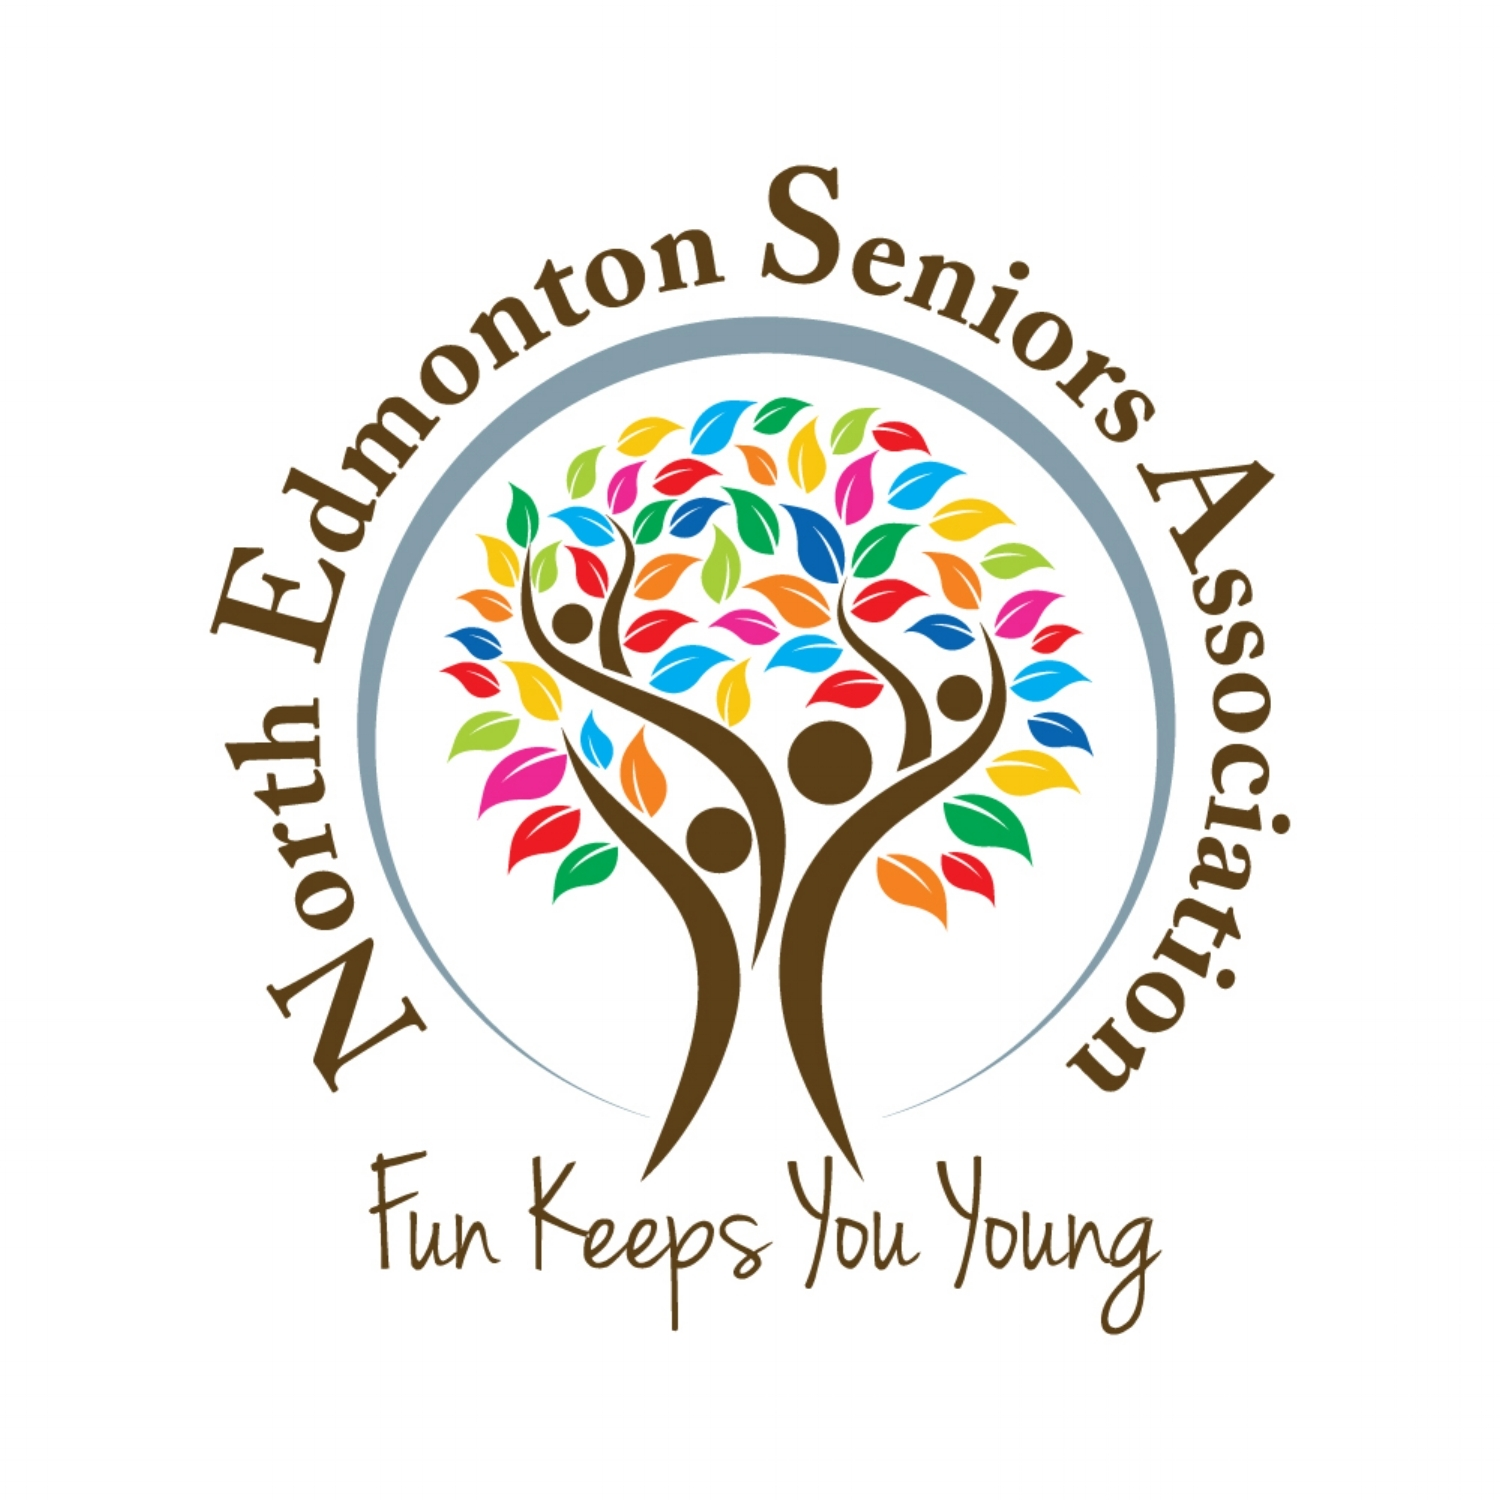 North Edmonton Seniors Association